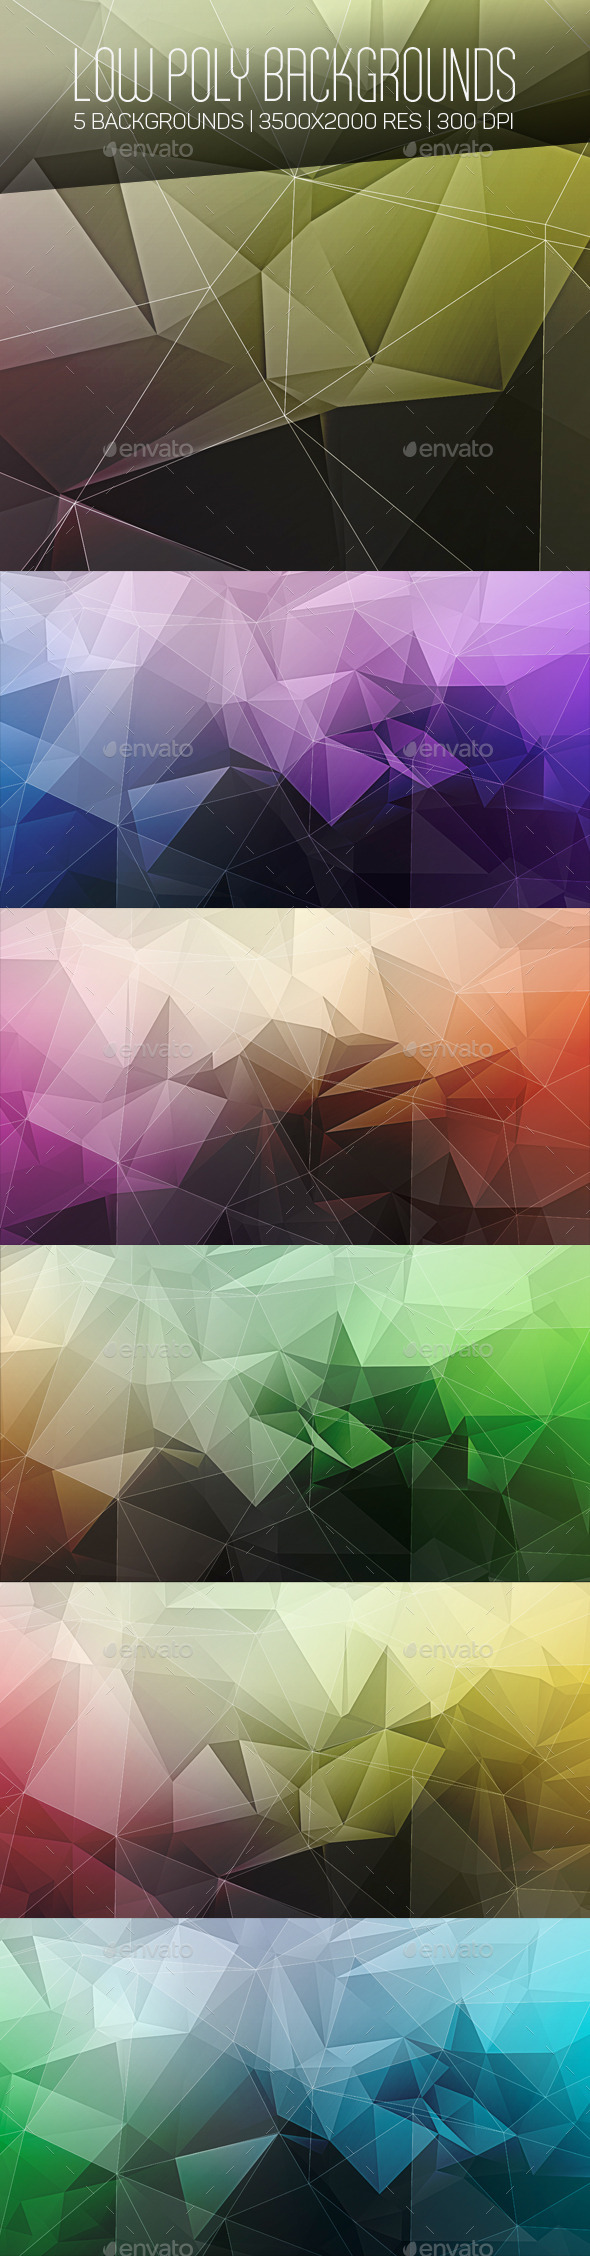 Low Poly Backgrounds - Abstract Backgrounds